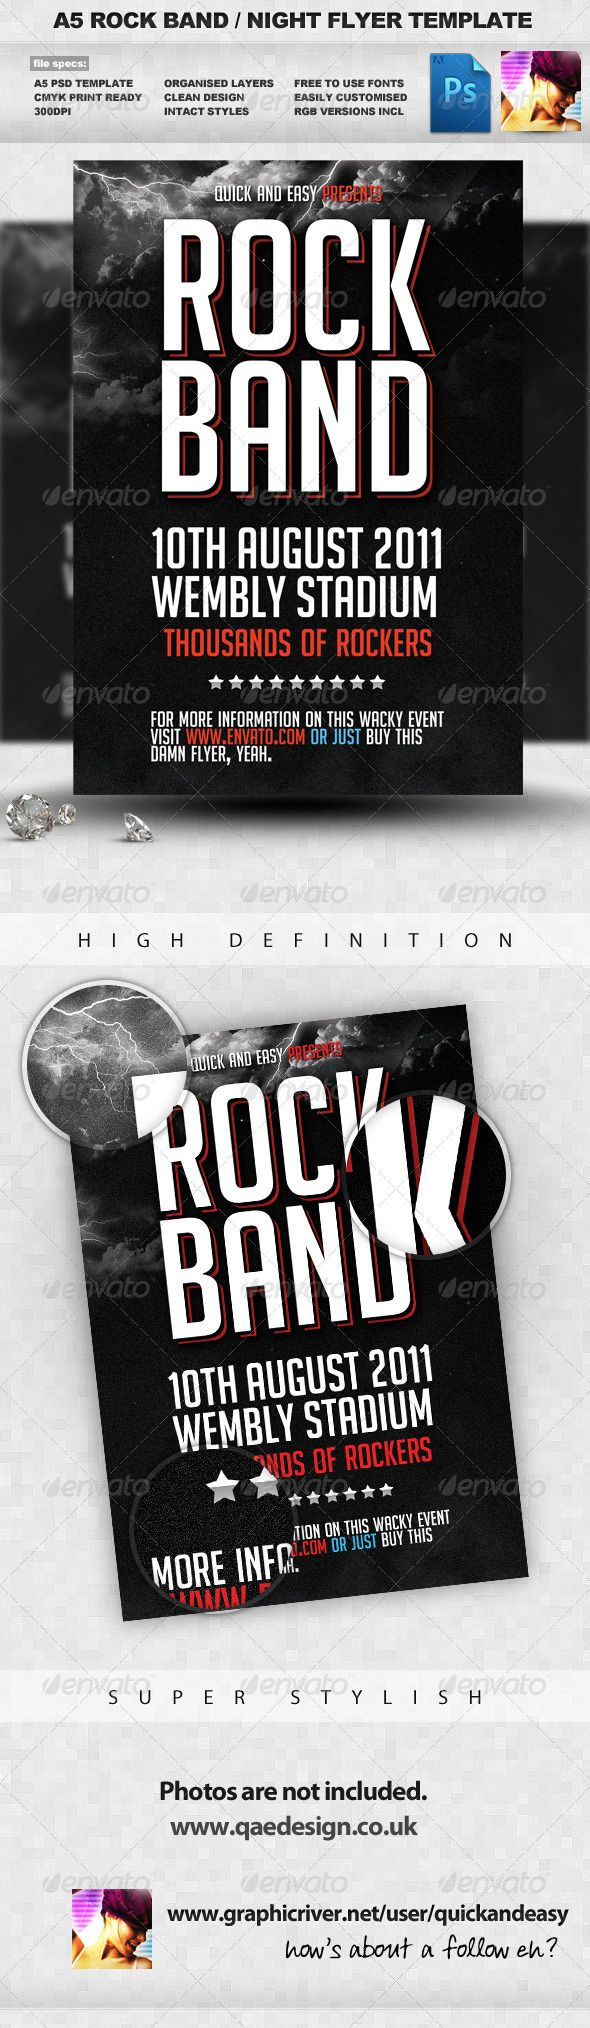 Rock Band Flyer Template Flyer Template Rock Bands And Template - Buy flyer templates